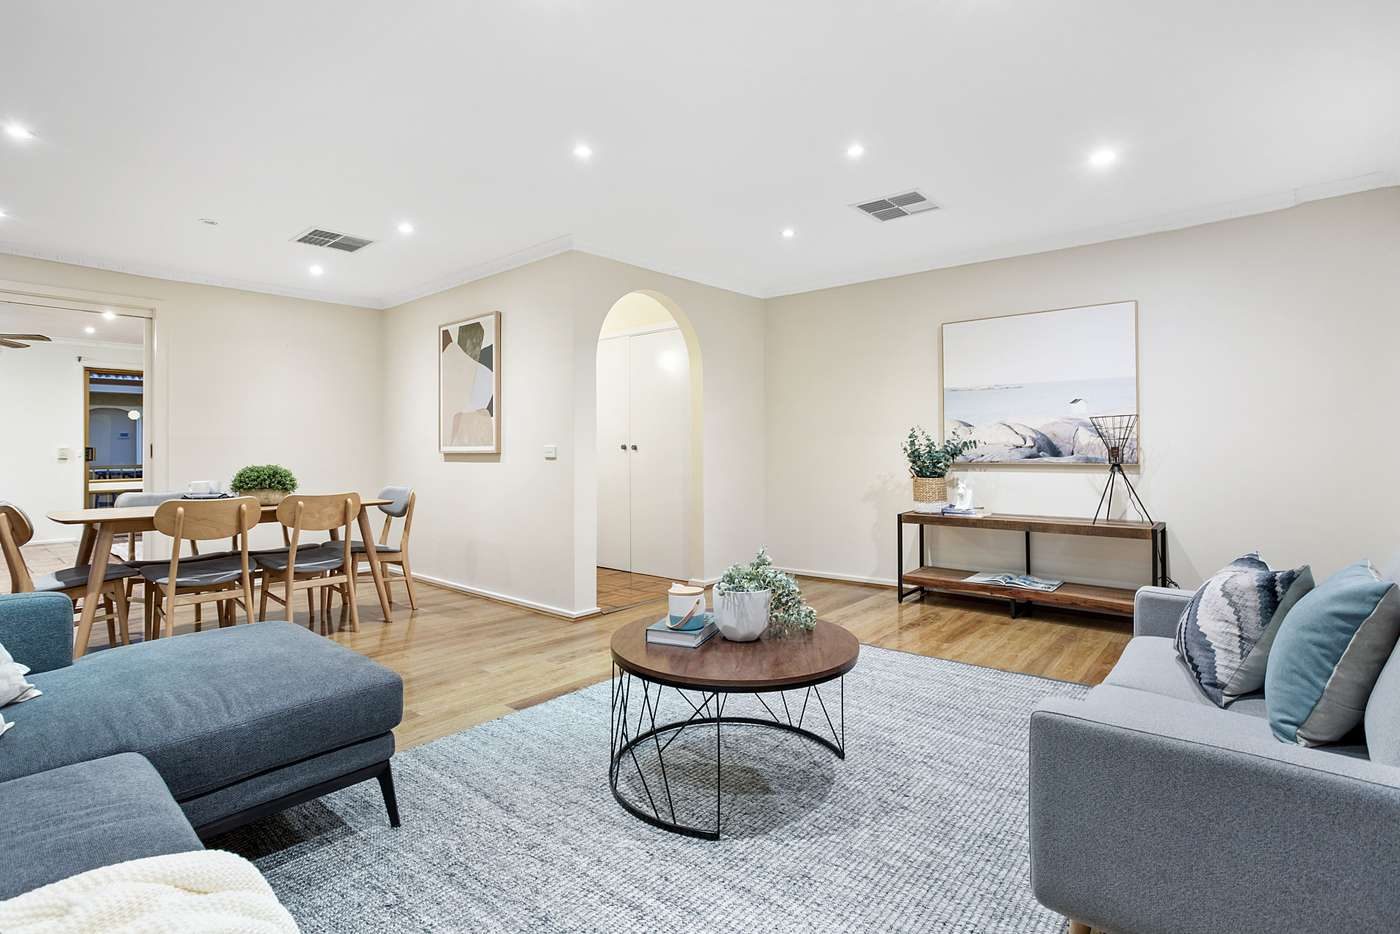 Sixth view of Homely house listing, 11 Alvanley Court, Mulgrave VIC 3170